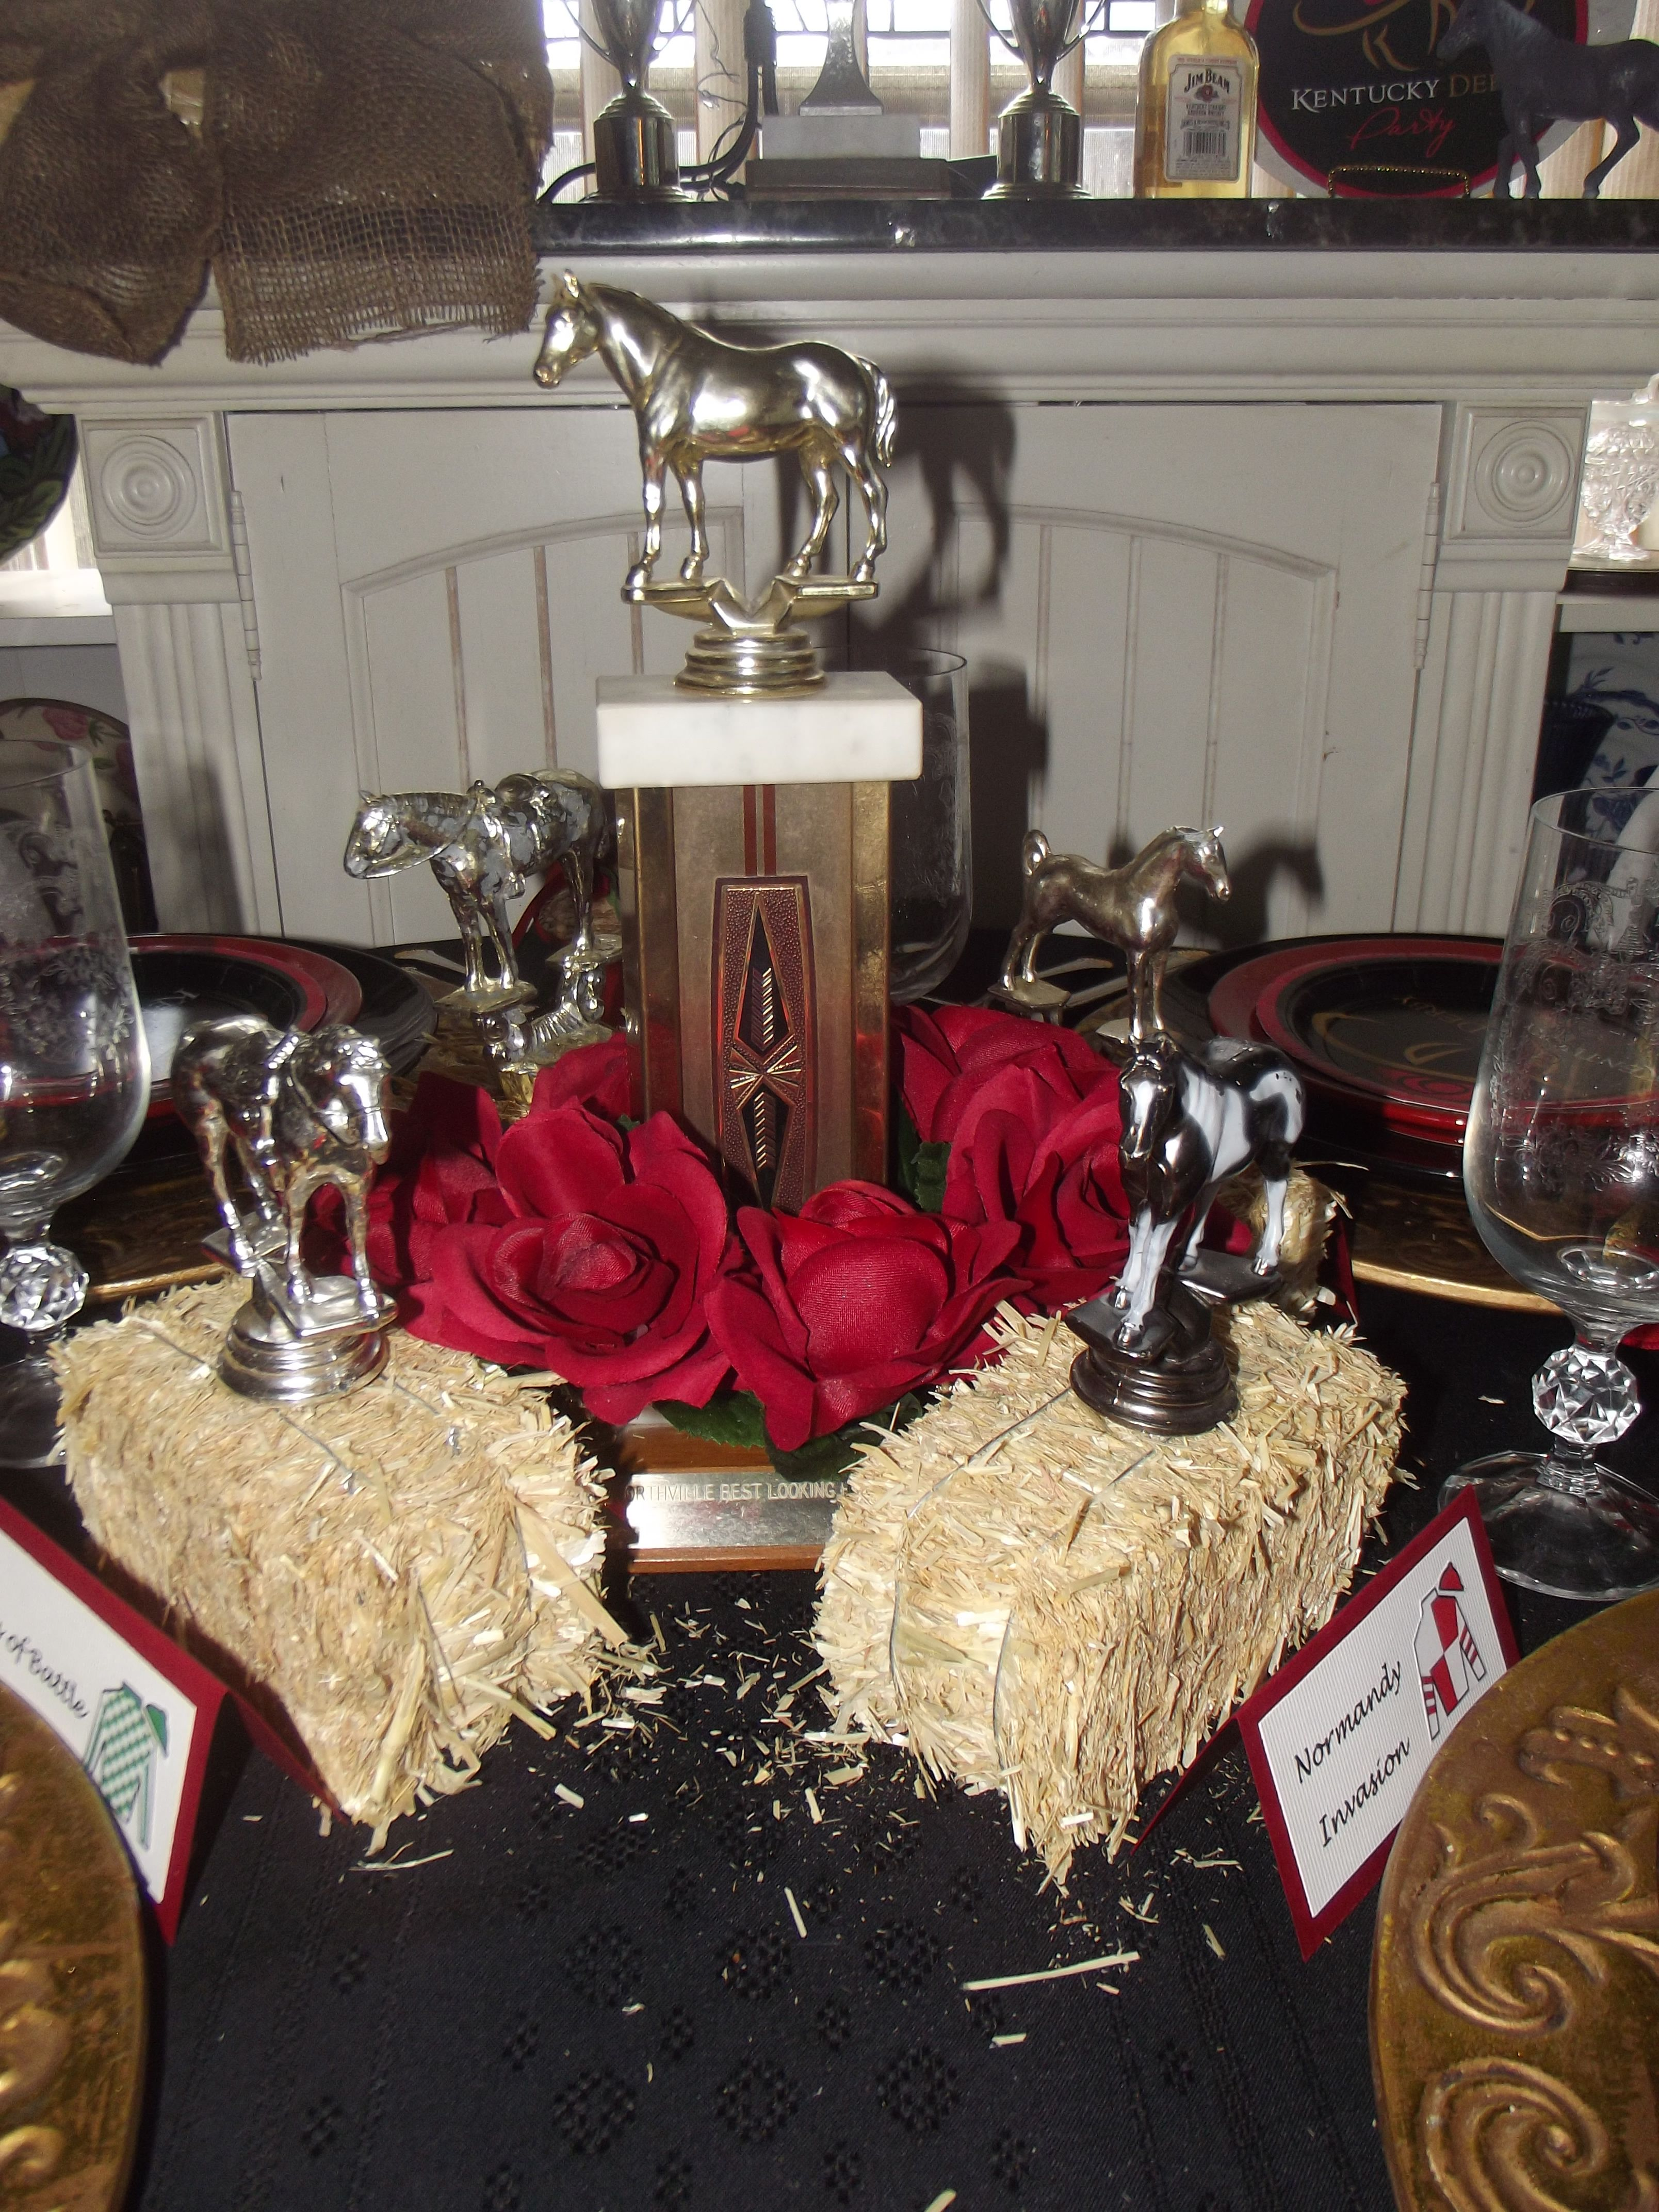 Kentucky Derby Centerpiece Made With Old Trophies From A